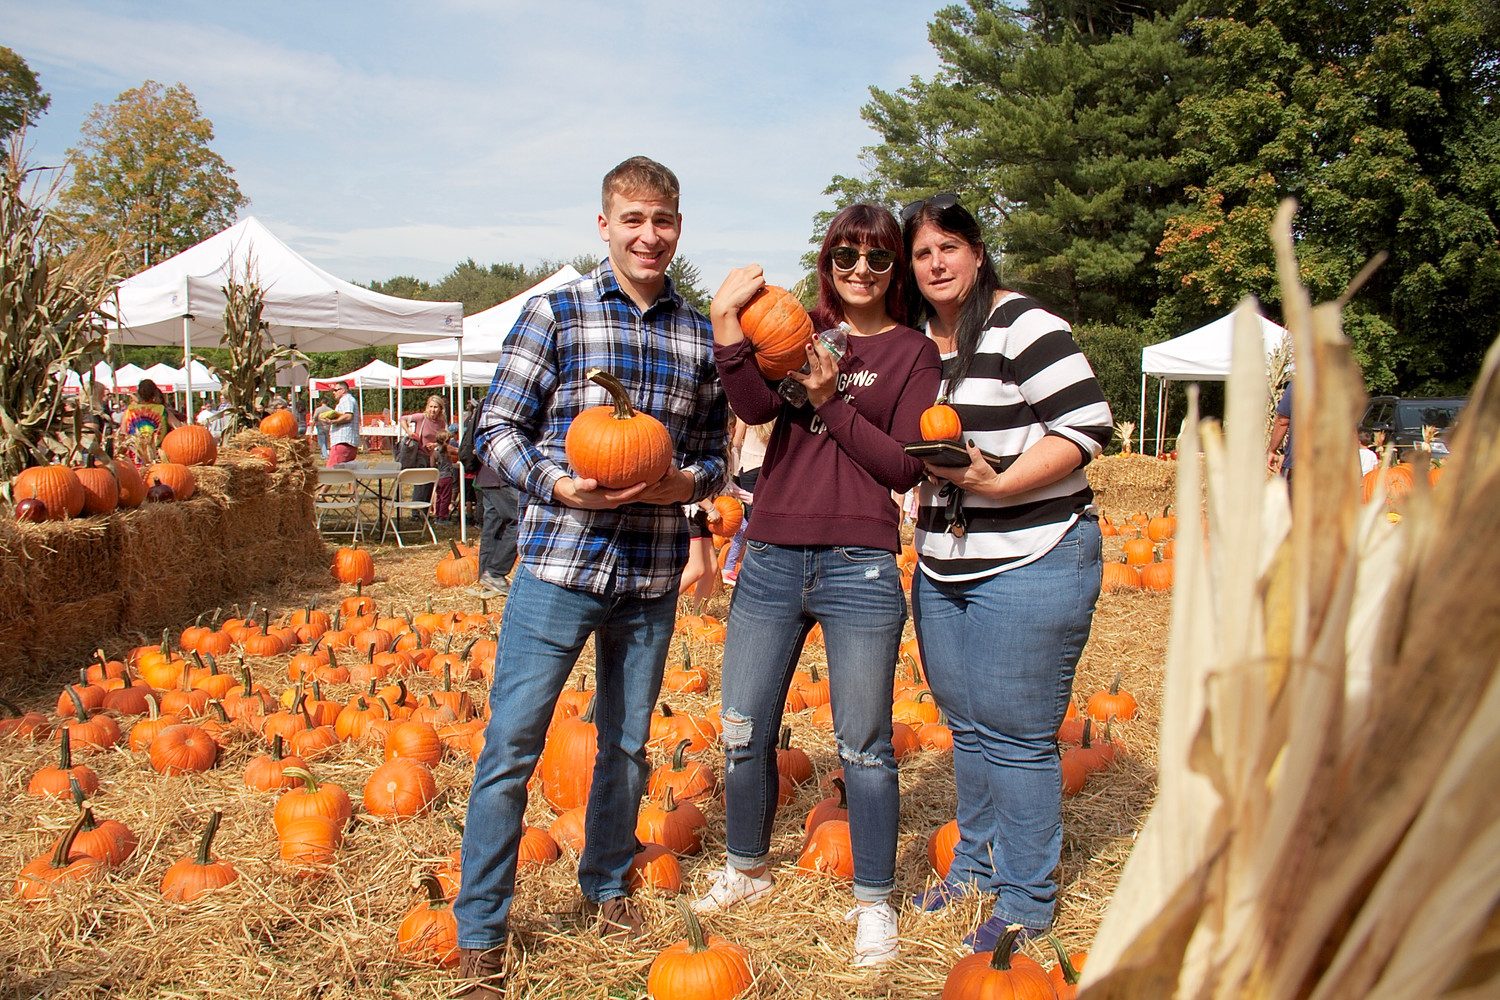 John Beers, Casie Strohson, and Suzanne Bower chose just the right pumpkins for themselves.